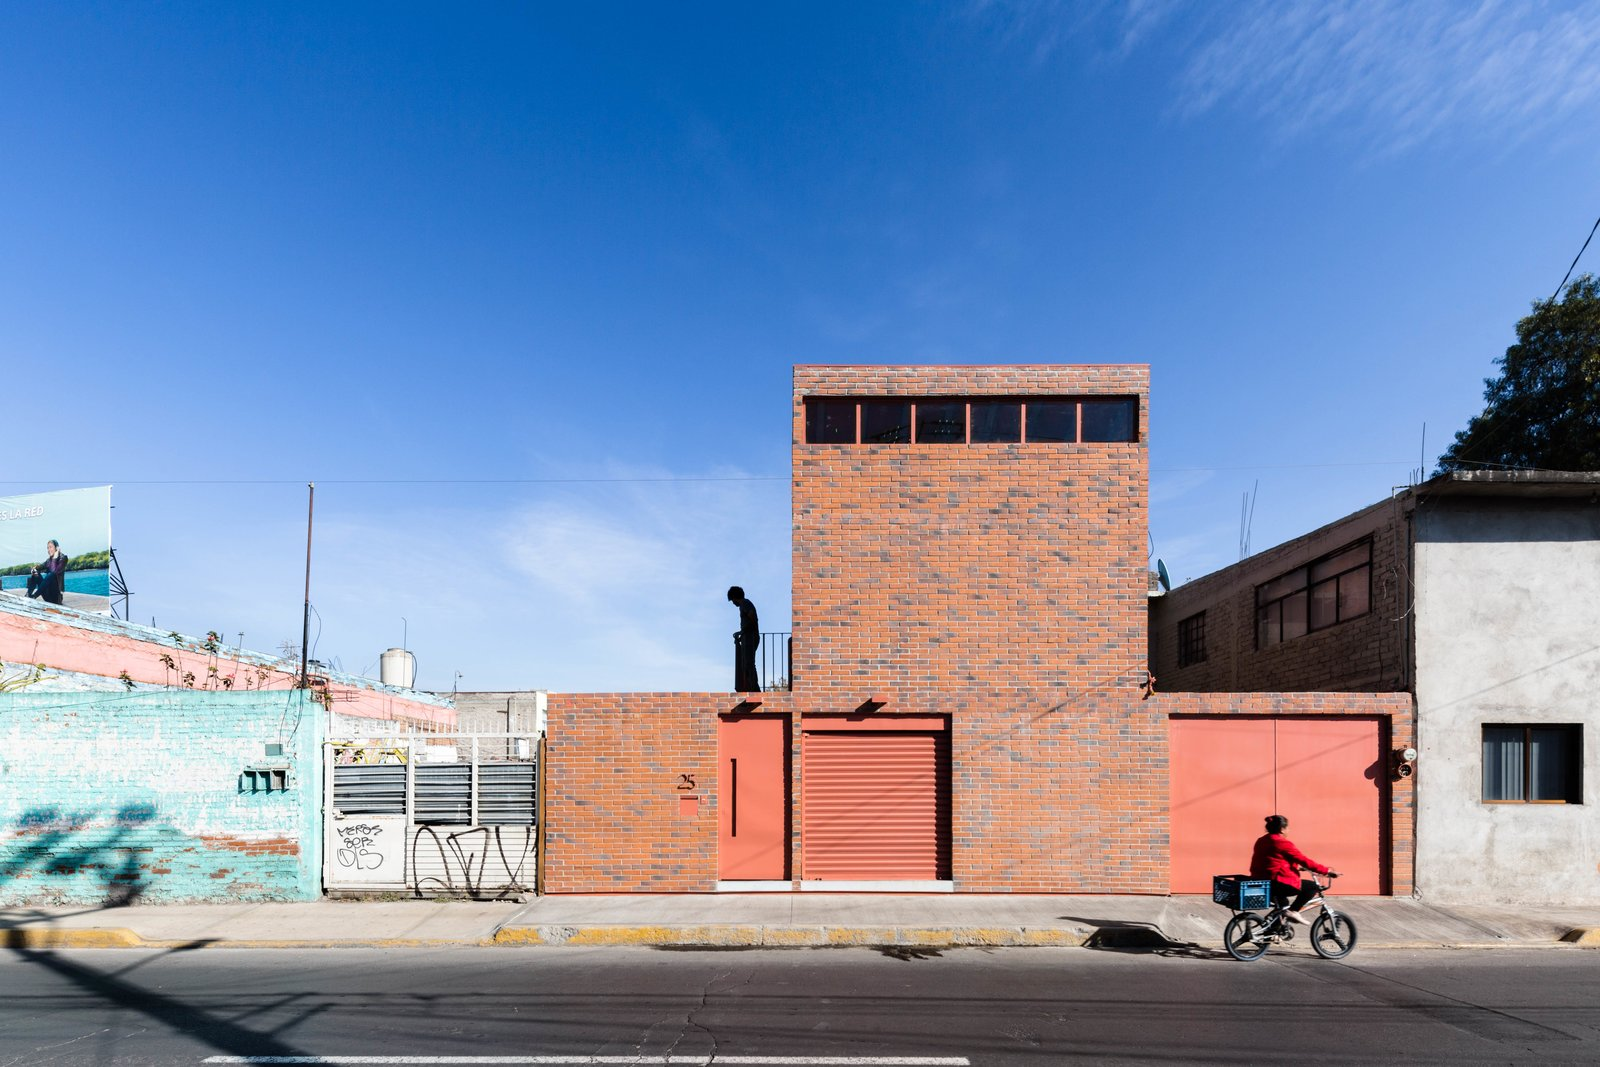 A solution to cramped urban living in Texcoco, Mexico. Tagged: Exterior, House, Brick, and Sawtooth.  Best Exterior House Brick Photos from Before and After: A Cramped Home in Mexico Gets a Drastic Makeover on a Tight Budget